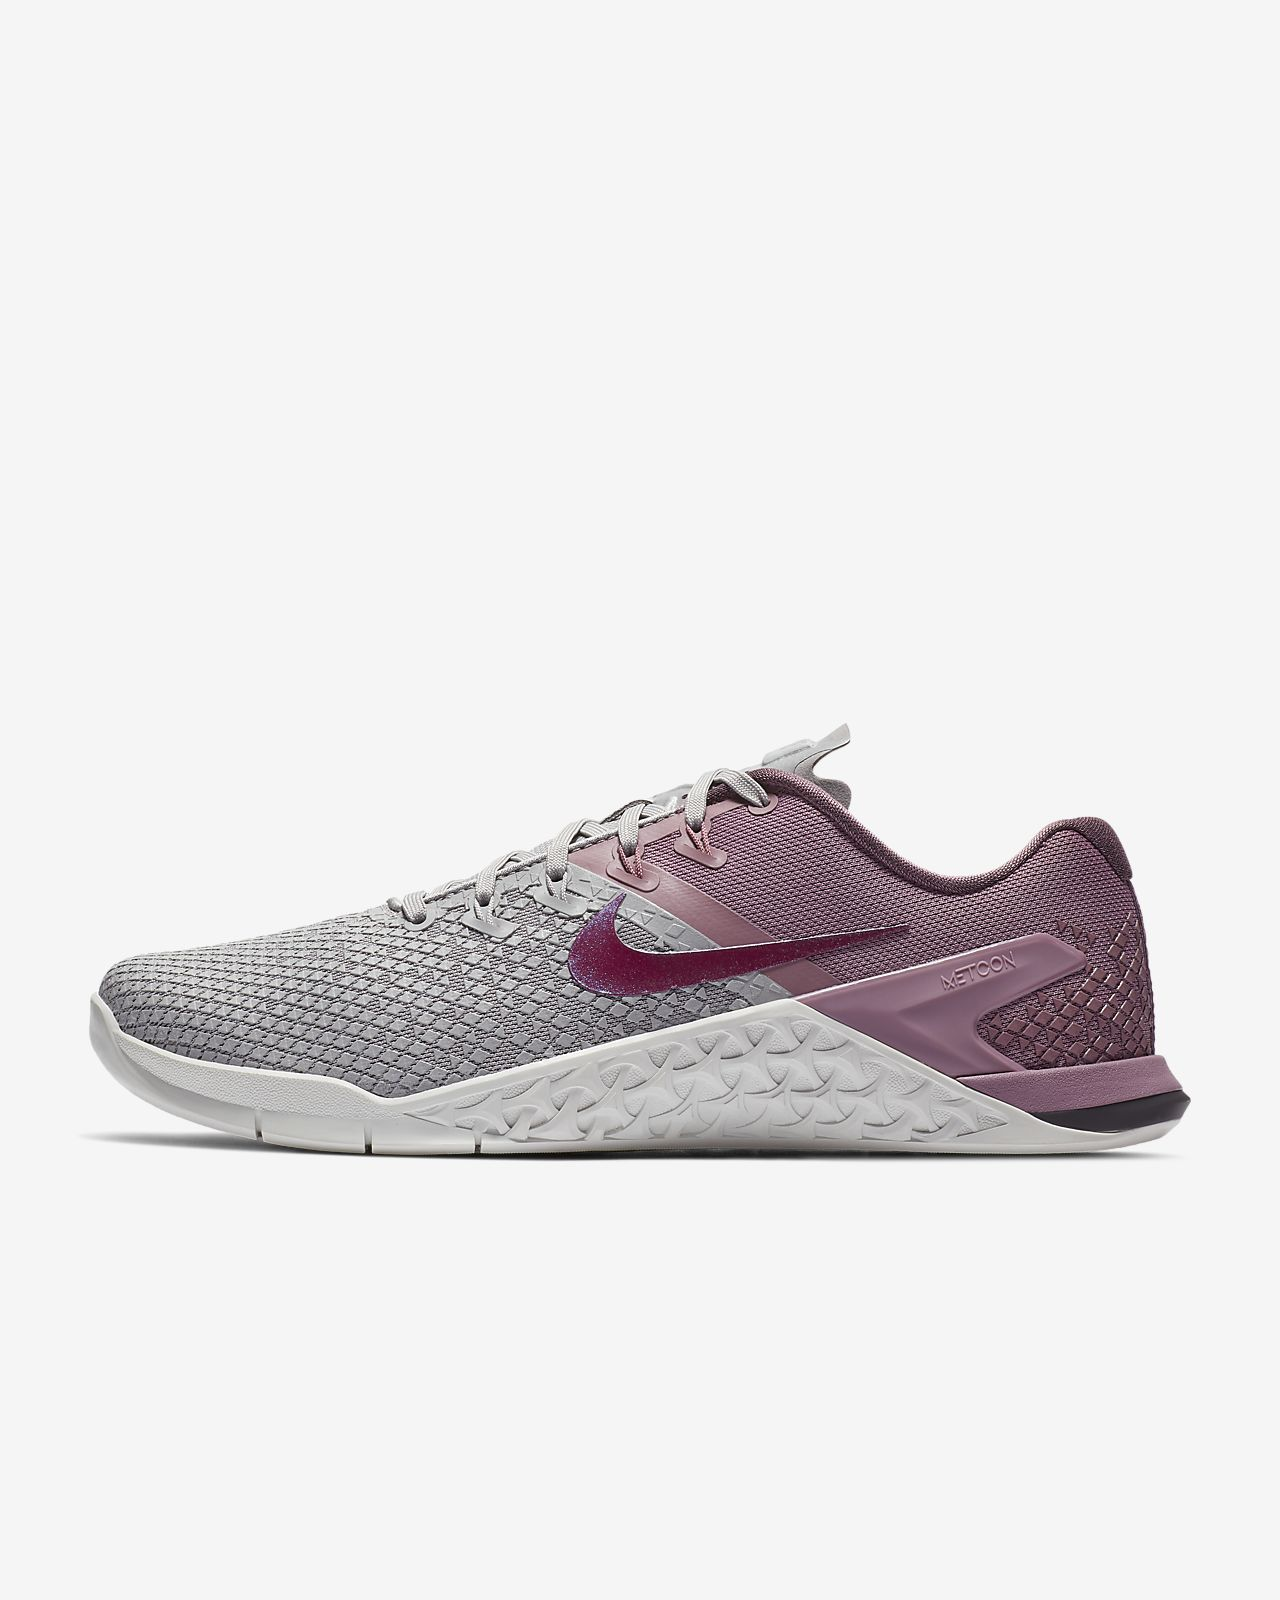 51450d637fdc Nike Metcon 4 XD Women s Cross-Training Weightlifting Shoe. Nike.com HR